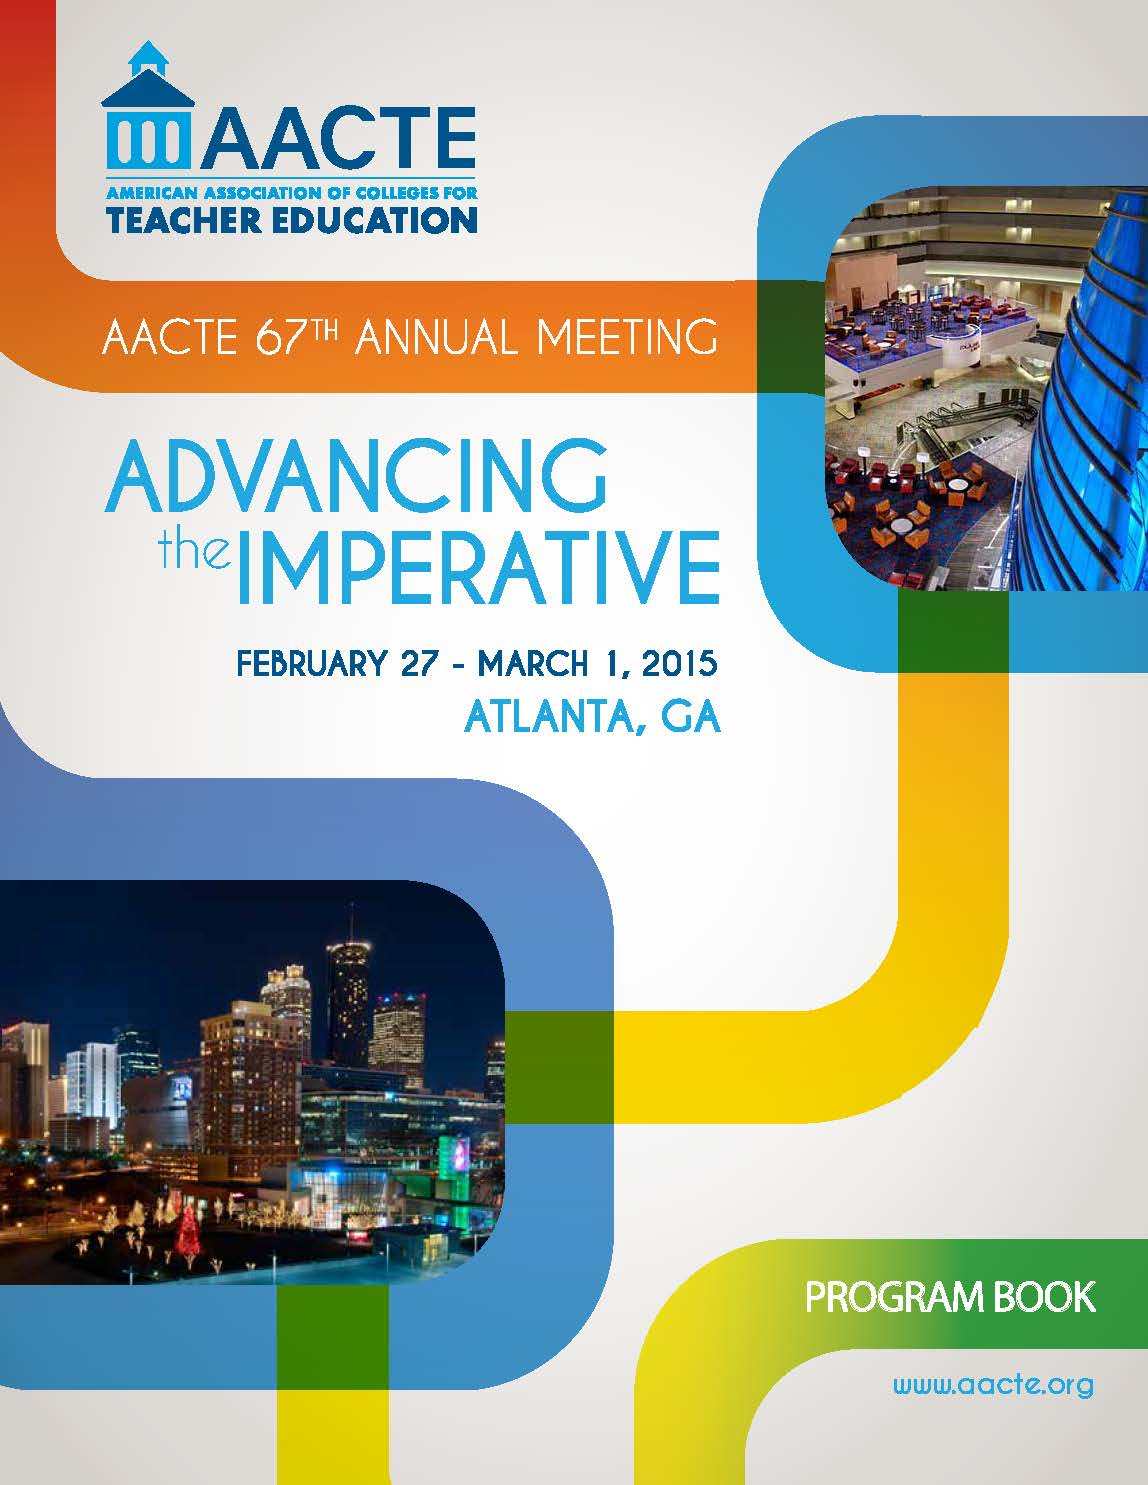 AACTE Program Book